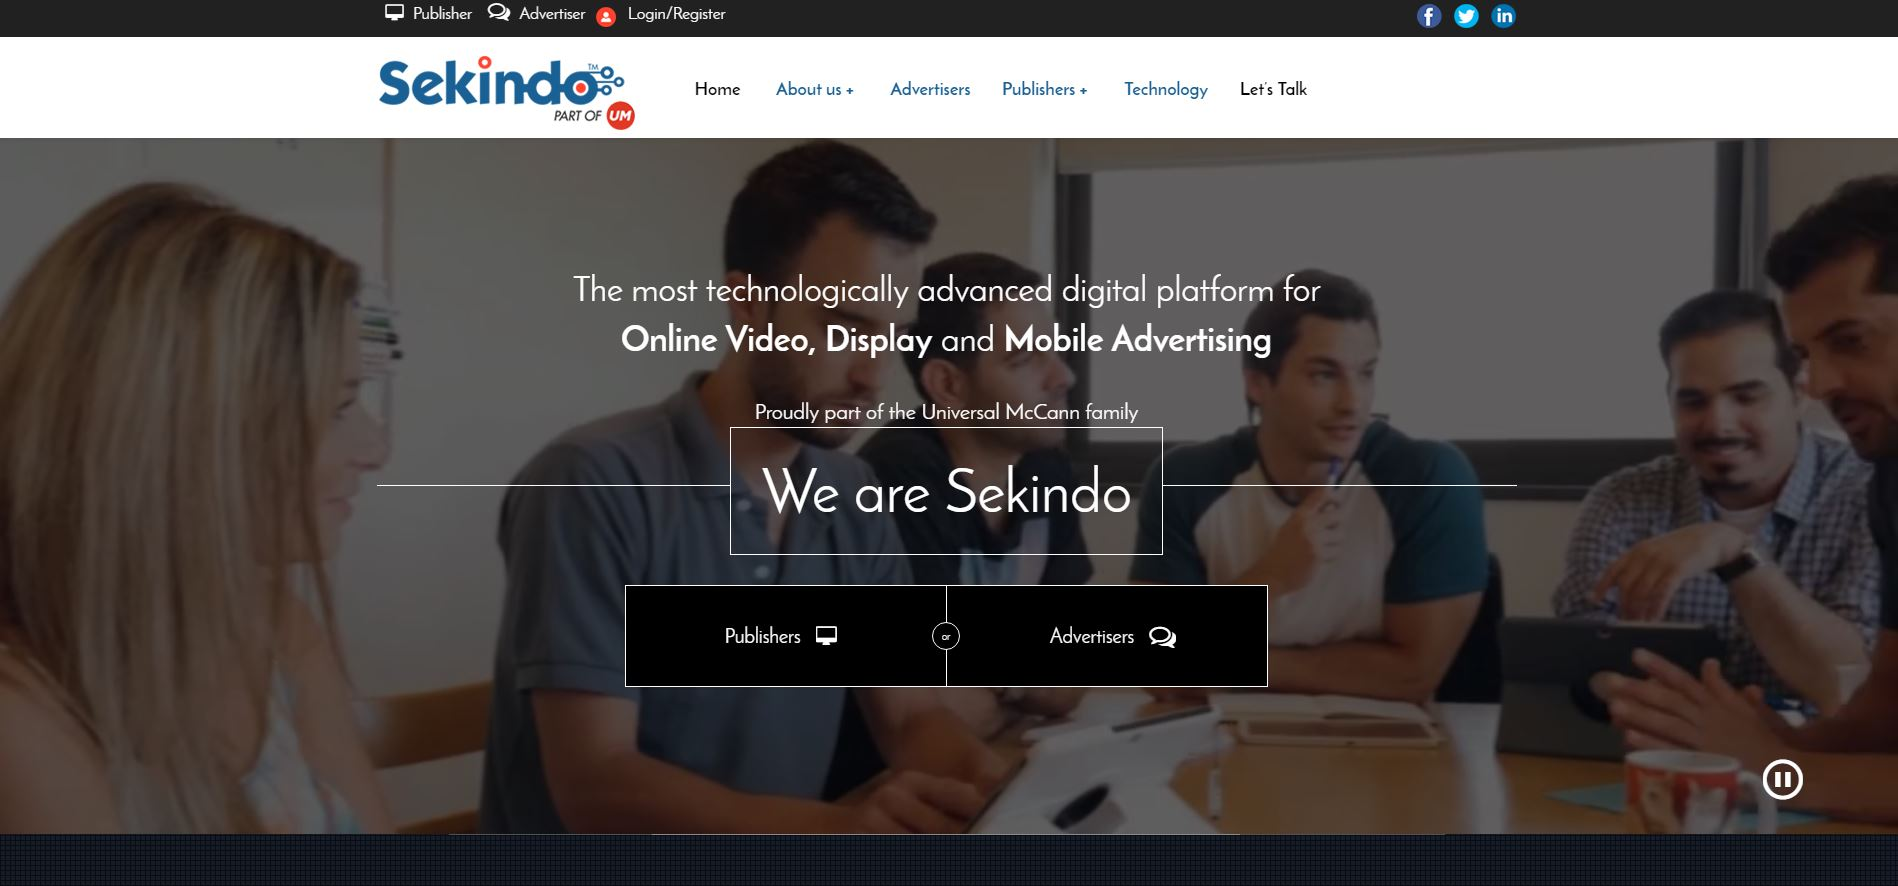 This picture shows marketers how Sekindo uses young, upbeat staff pictures to create an emotional connection with visitors to generate more leads.